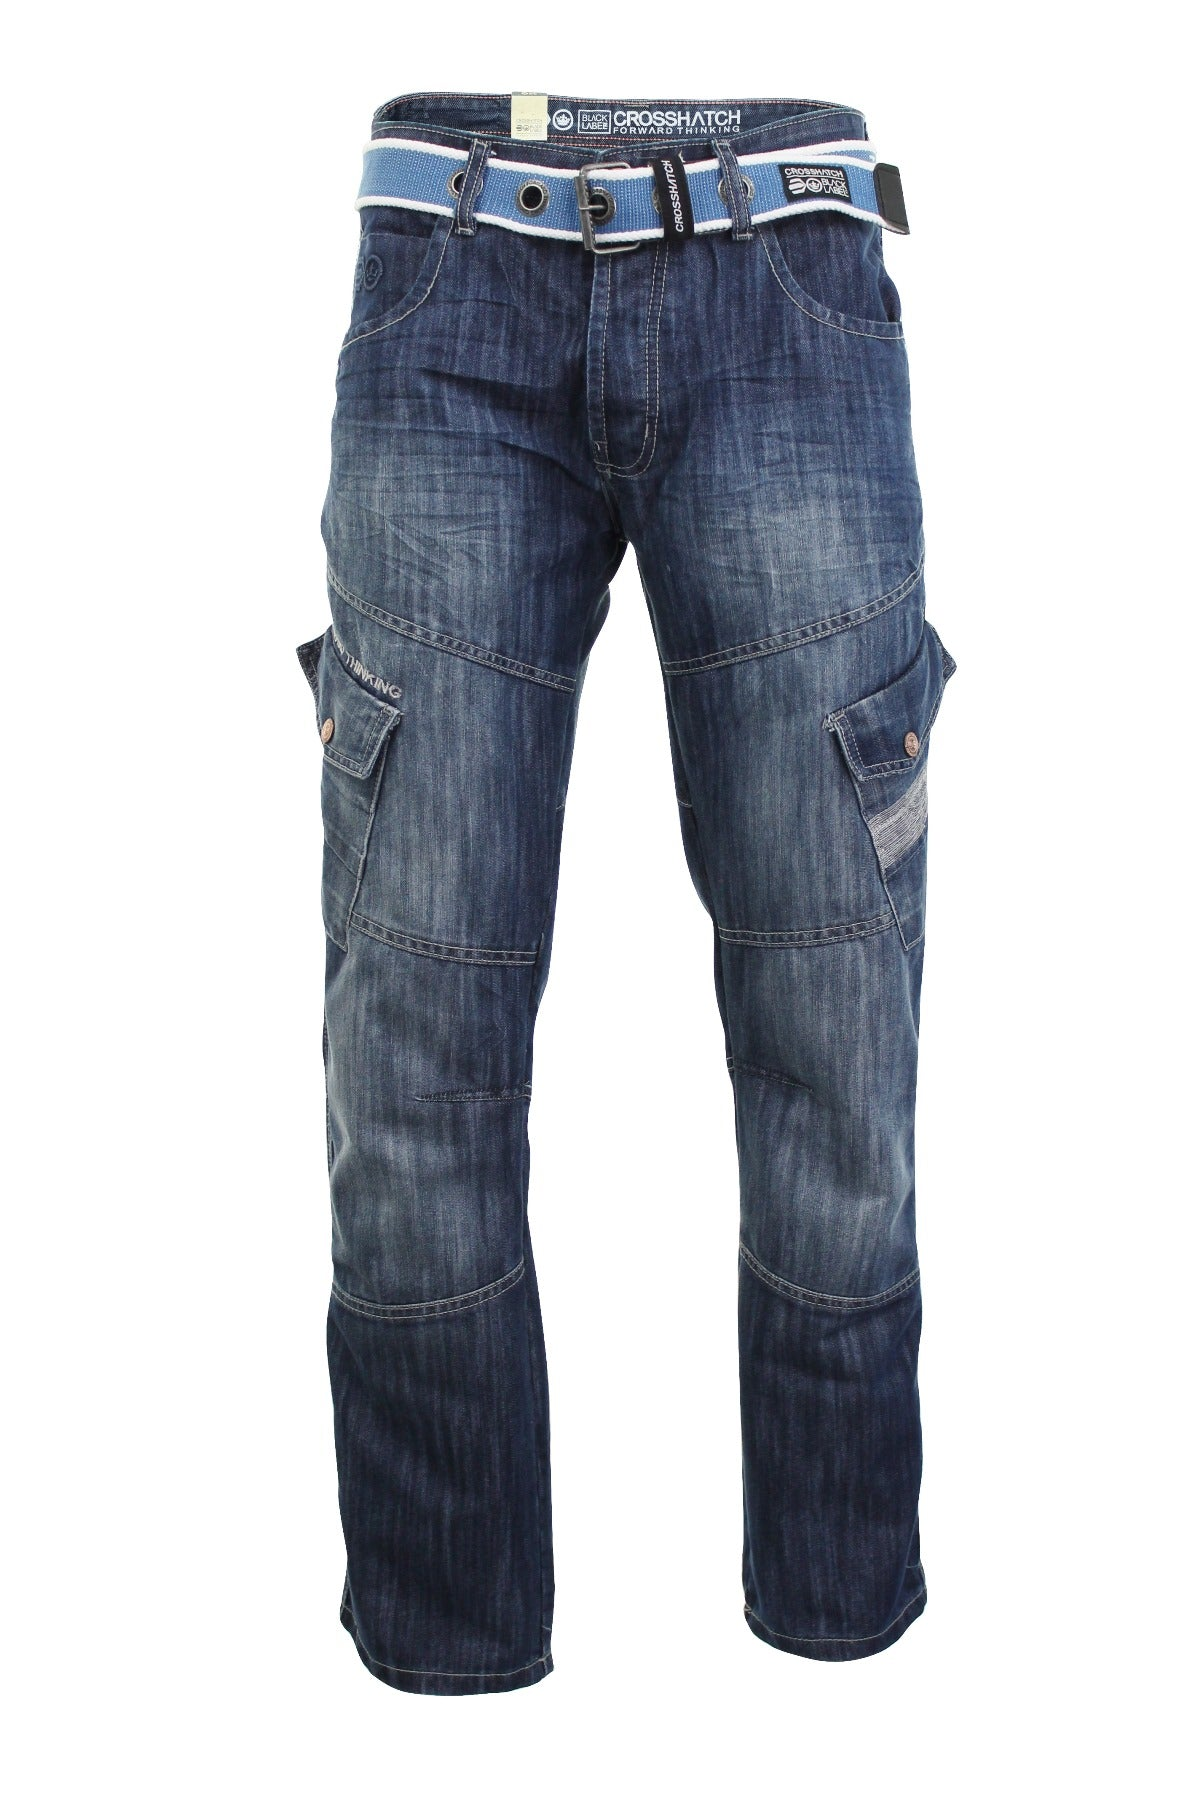 Mens Crosshatch 'Corona' Jeans Raw Stone Washed Denim Button Fly-2